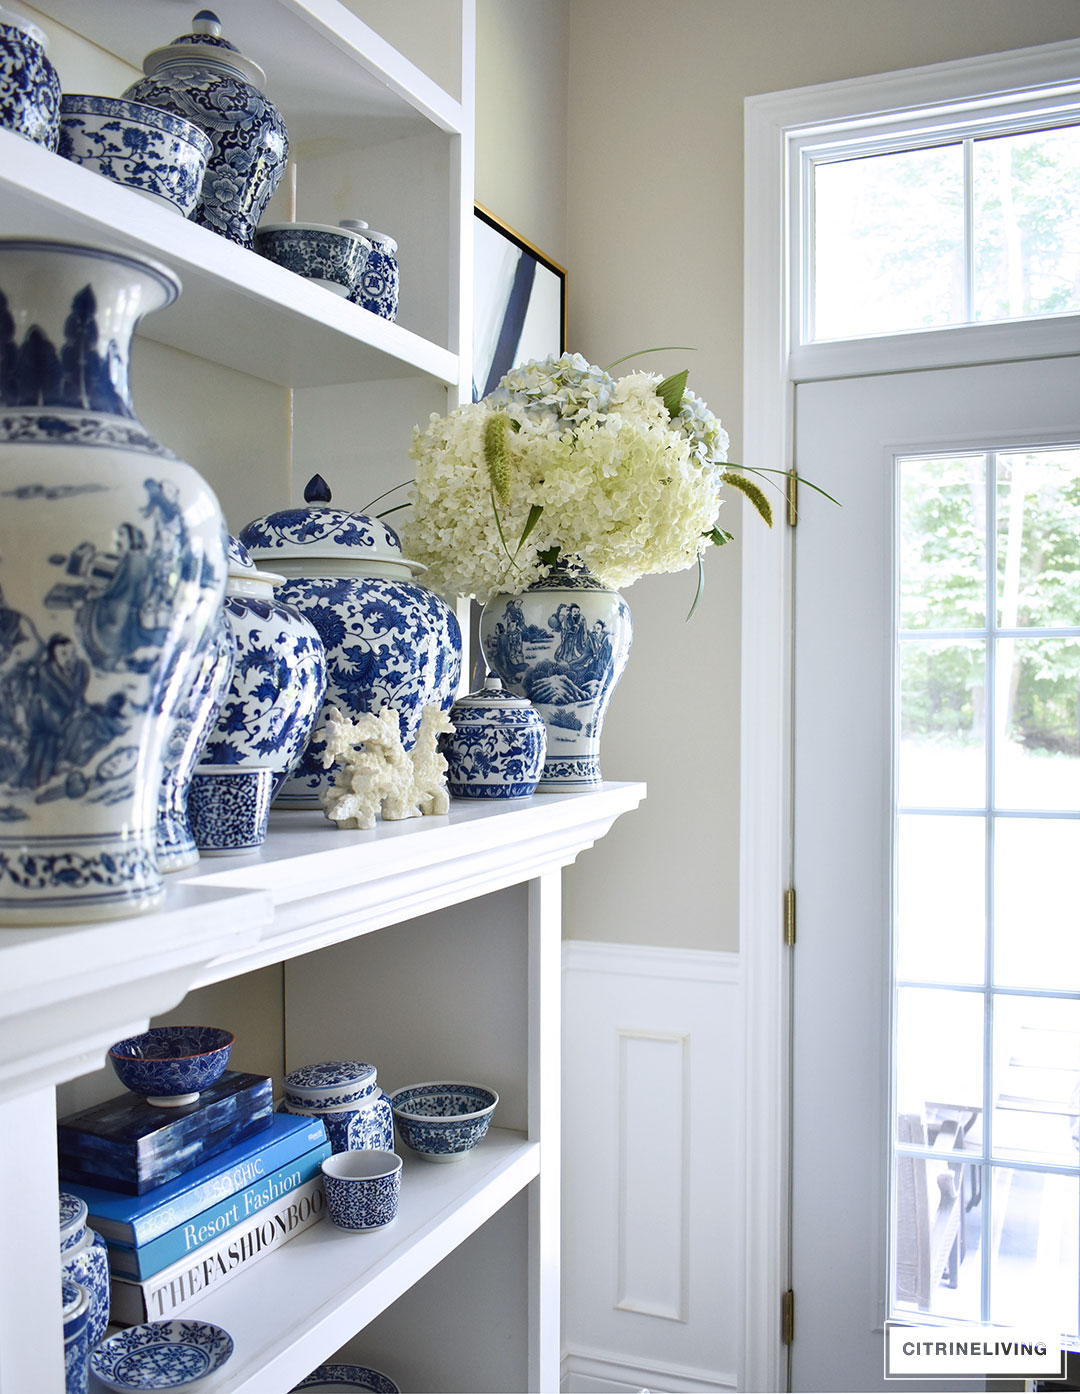 A beautiful collection of blue and white ginger jars, vases, bowls and dishes can be showcased and used anywhere throughout your home. Pair it with any color scheme and use it through any season of the year - this timeless classic will never go out of style!